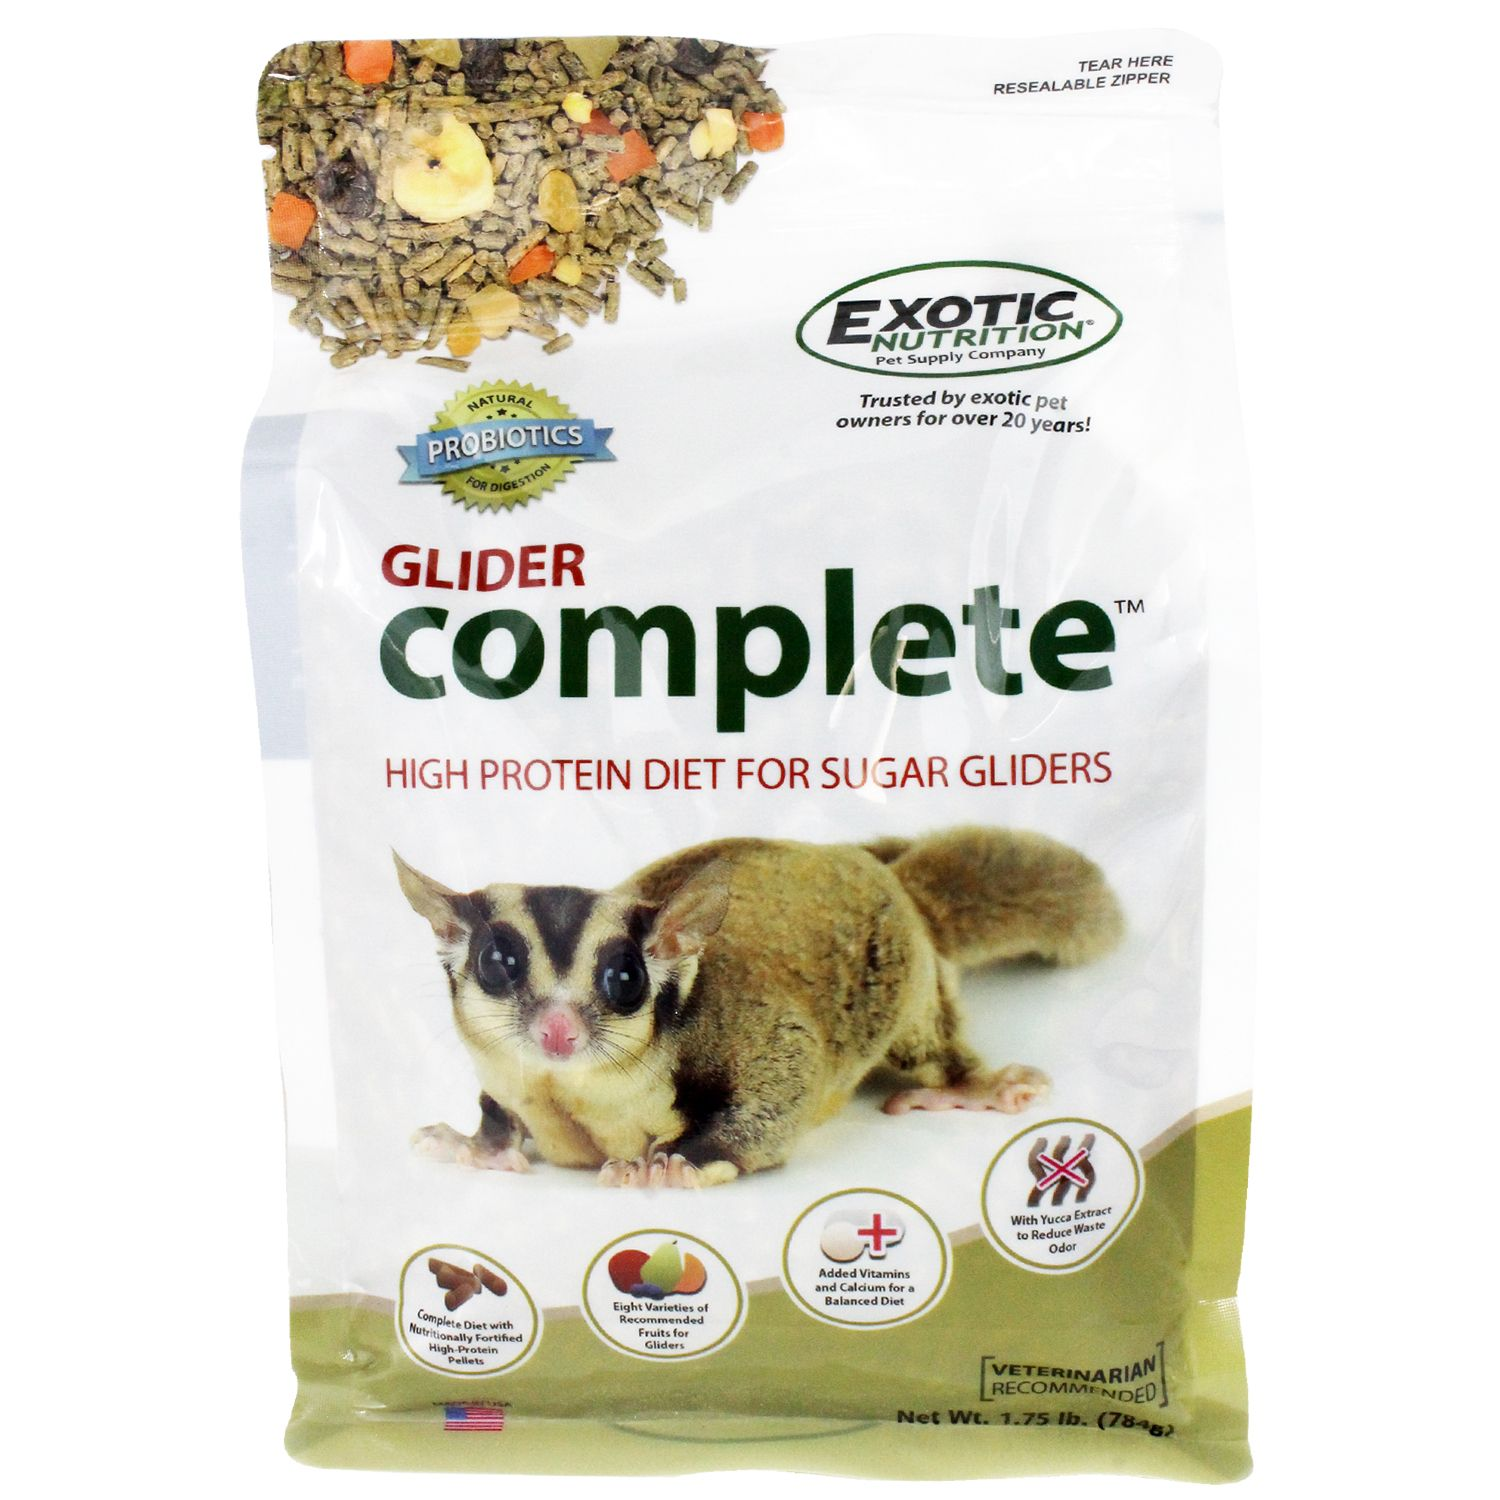 High Quality Sugar Glider Food With 8 Varieties Of Real Fruit